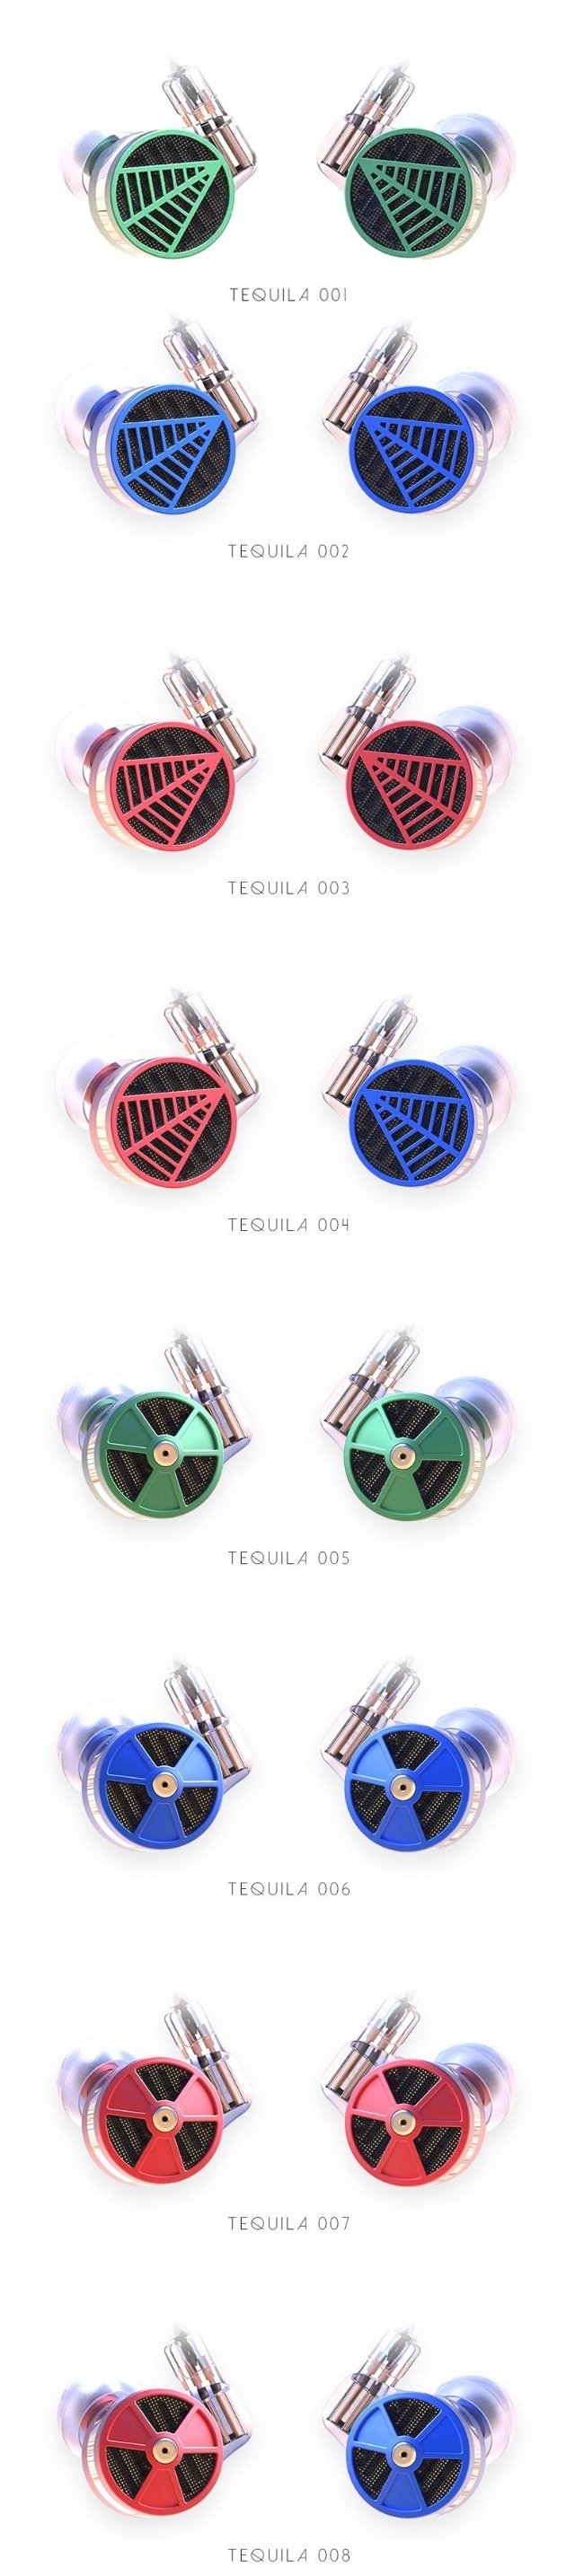 TFZ Tequila 1: bright design headphones with high-quality sound 38